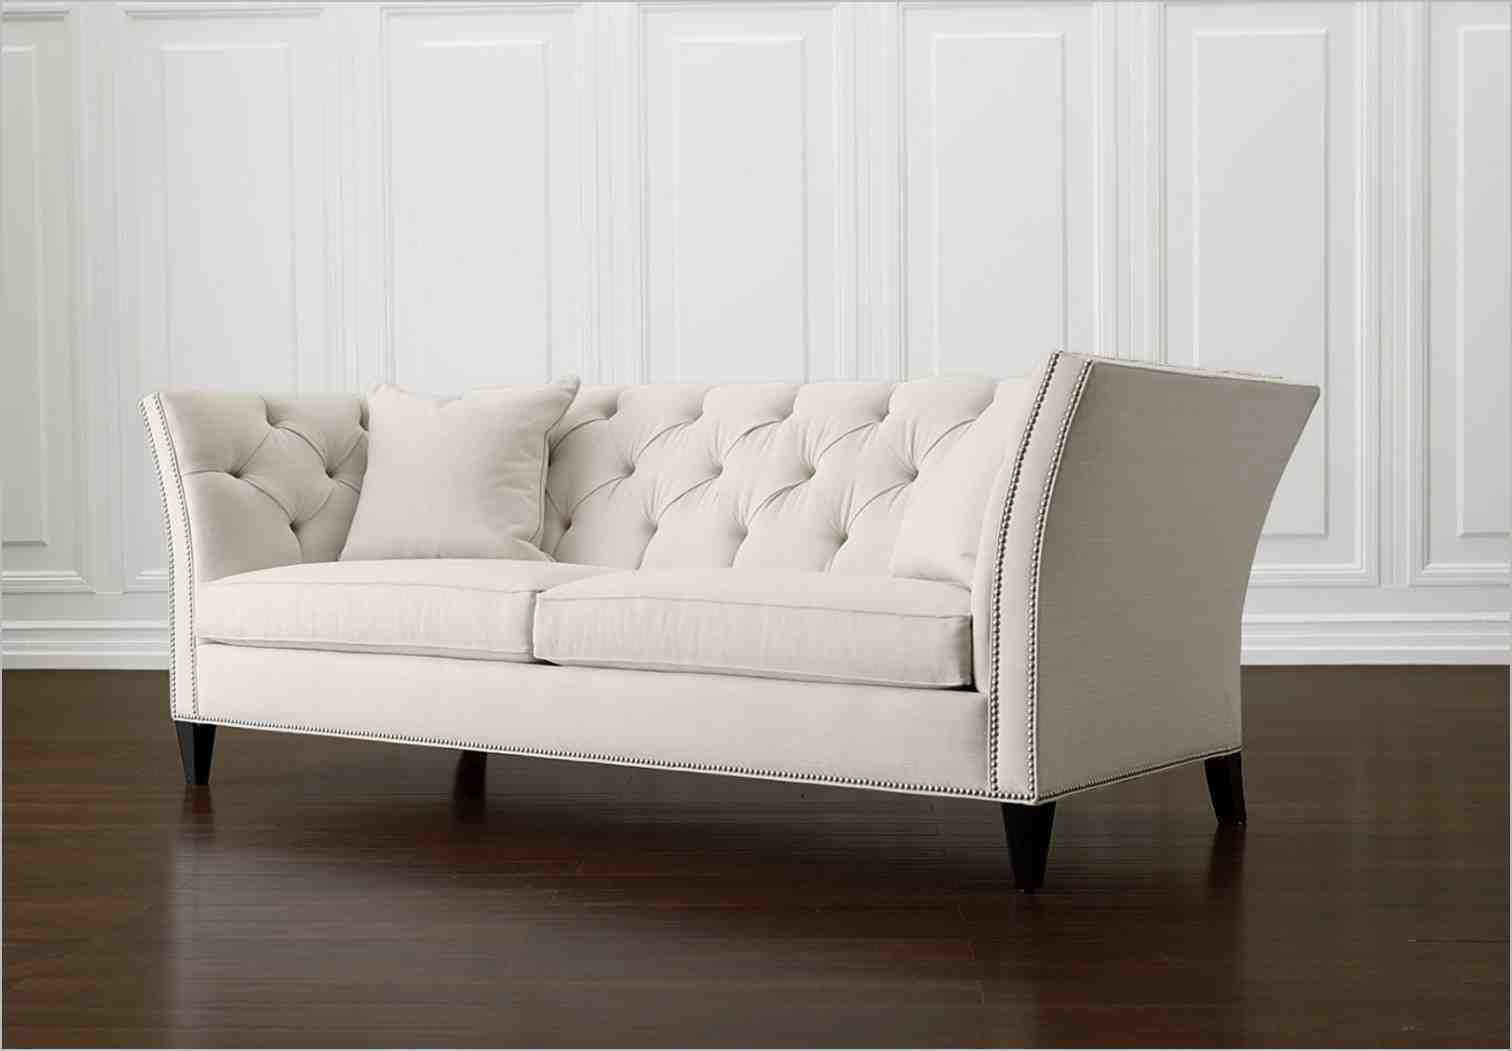 Ethan allen furniture sofas home furniture design for Ethan allen furniture